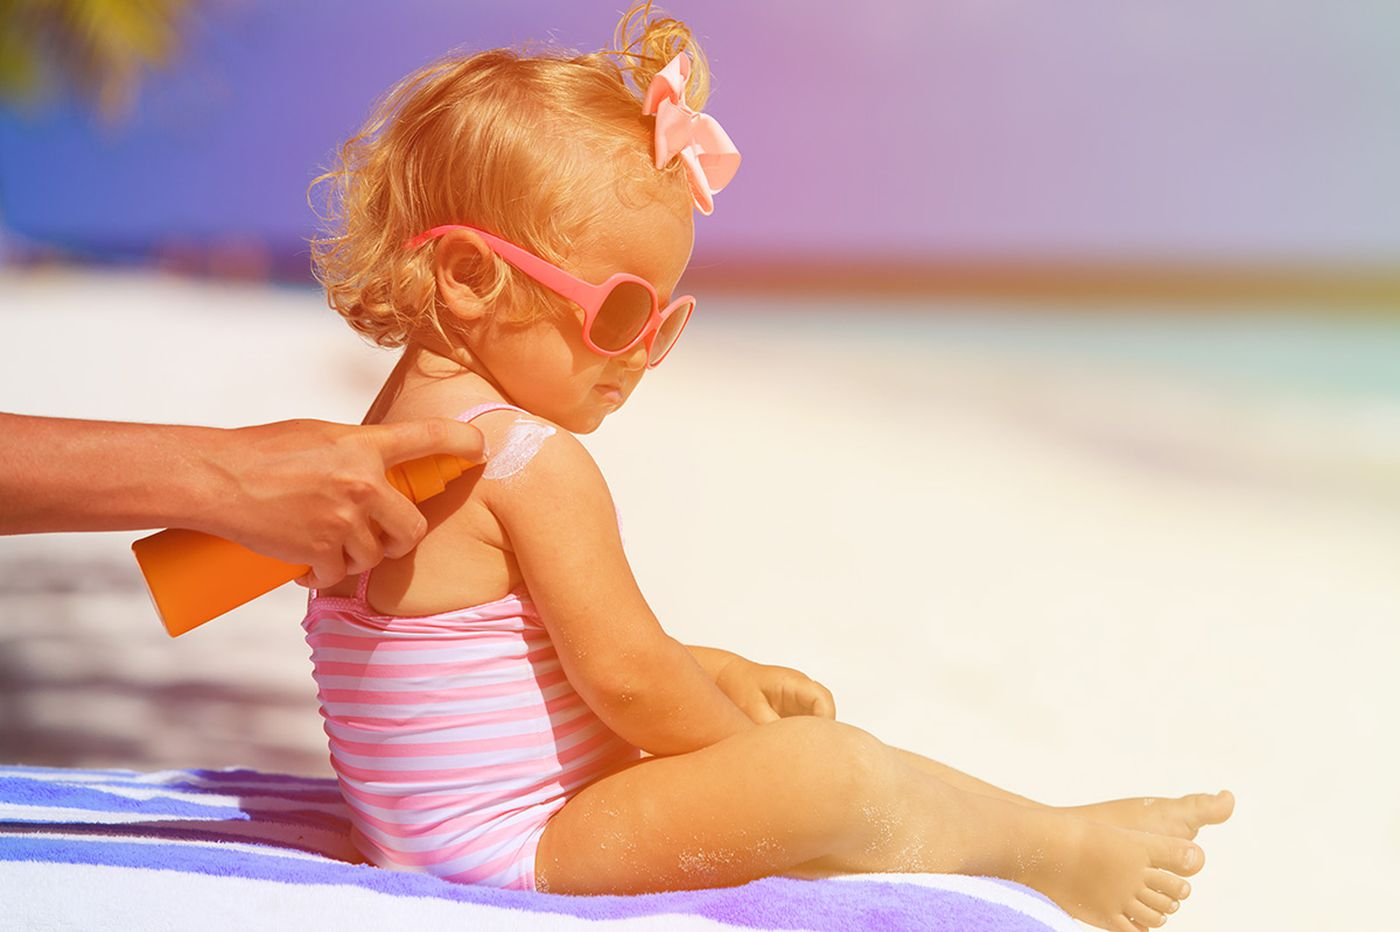 What you need to know about sunscreen, especially for kids